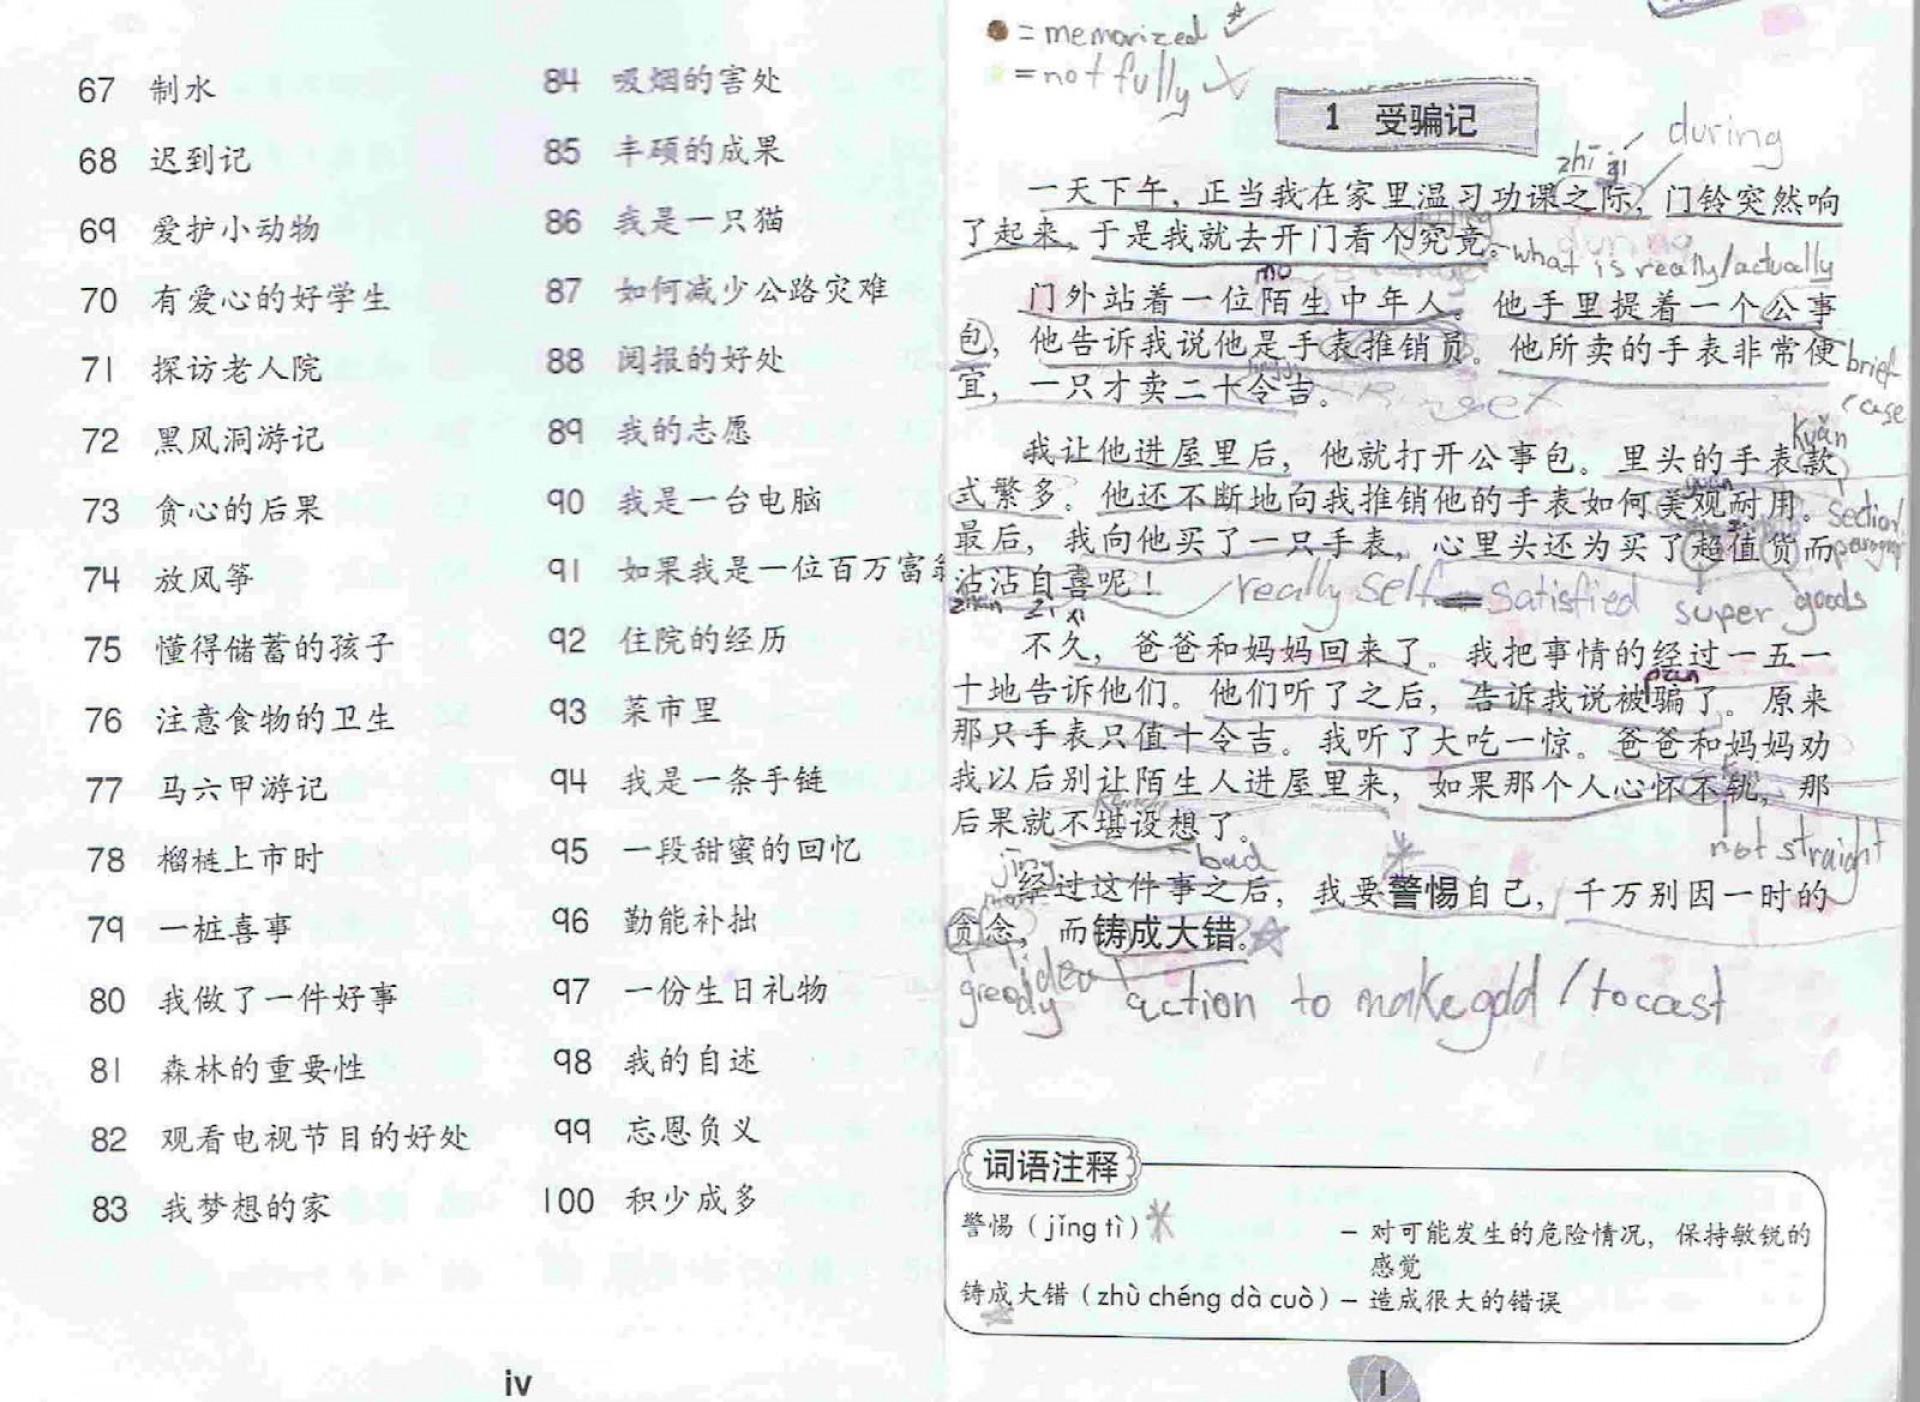 002 Essays On Reading Chinese Essay Sample And Learning Writing Competition Singapore Ccf23082012 00001 New Year Language Service Wedding Paper Structure Amazing Art Topics Vce Formats Sheet 1920